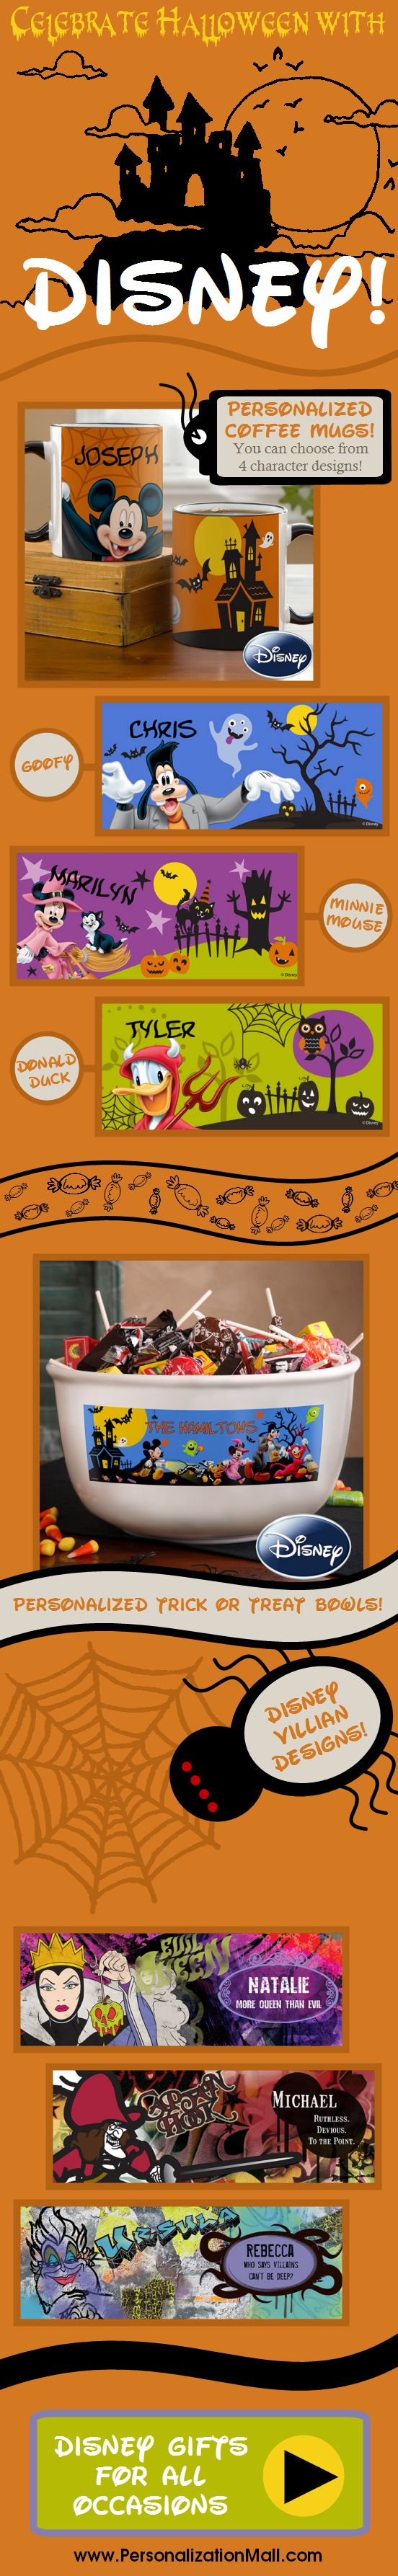 Disney Fans will LOVE this! They're all your favorite Characters dressed up for Halloween! This site has tons of unique Disney Gifts that you can personalize - it's so cool you have to check out this site! #Disney #Mickey: Gifts Ideas, Disney Gifts